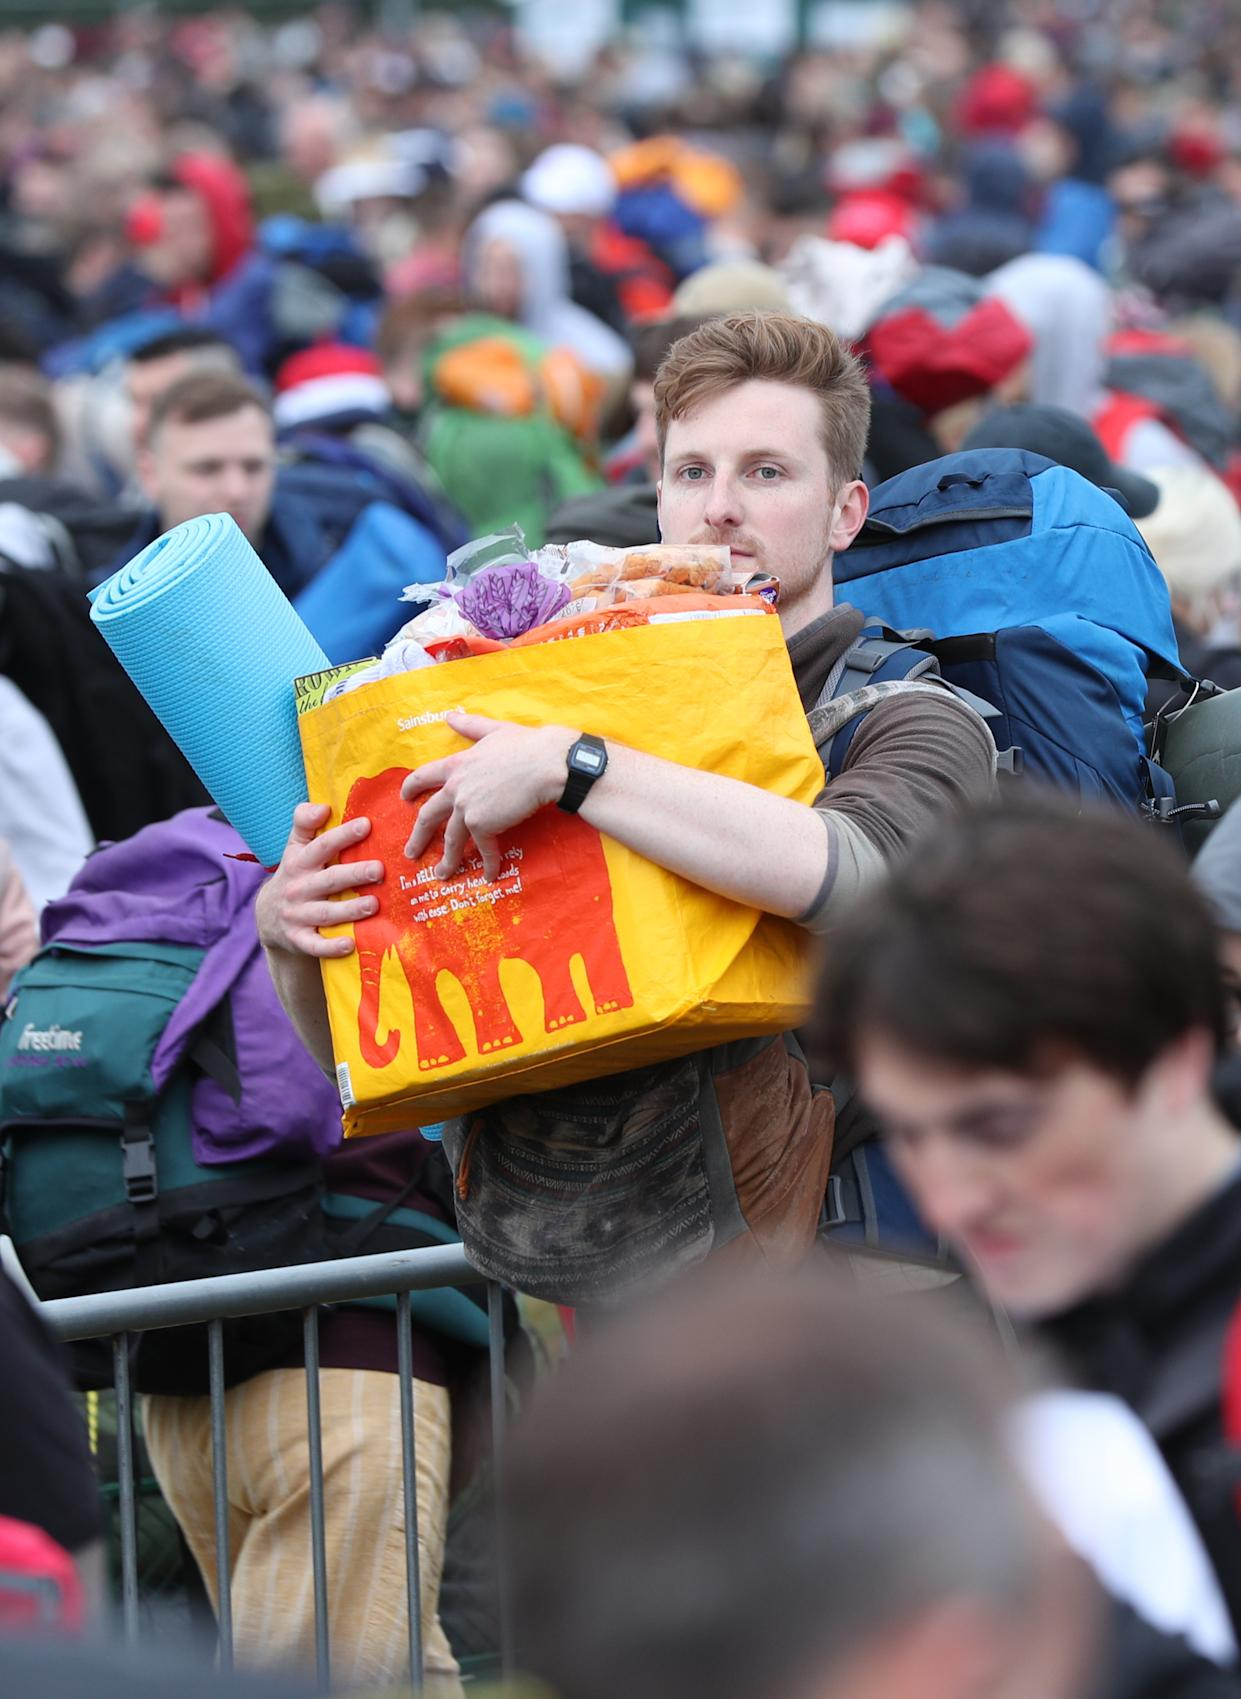 The Glastonbury Festival is set for clement conditions this year